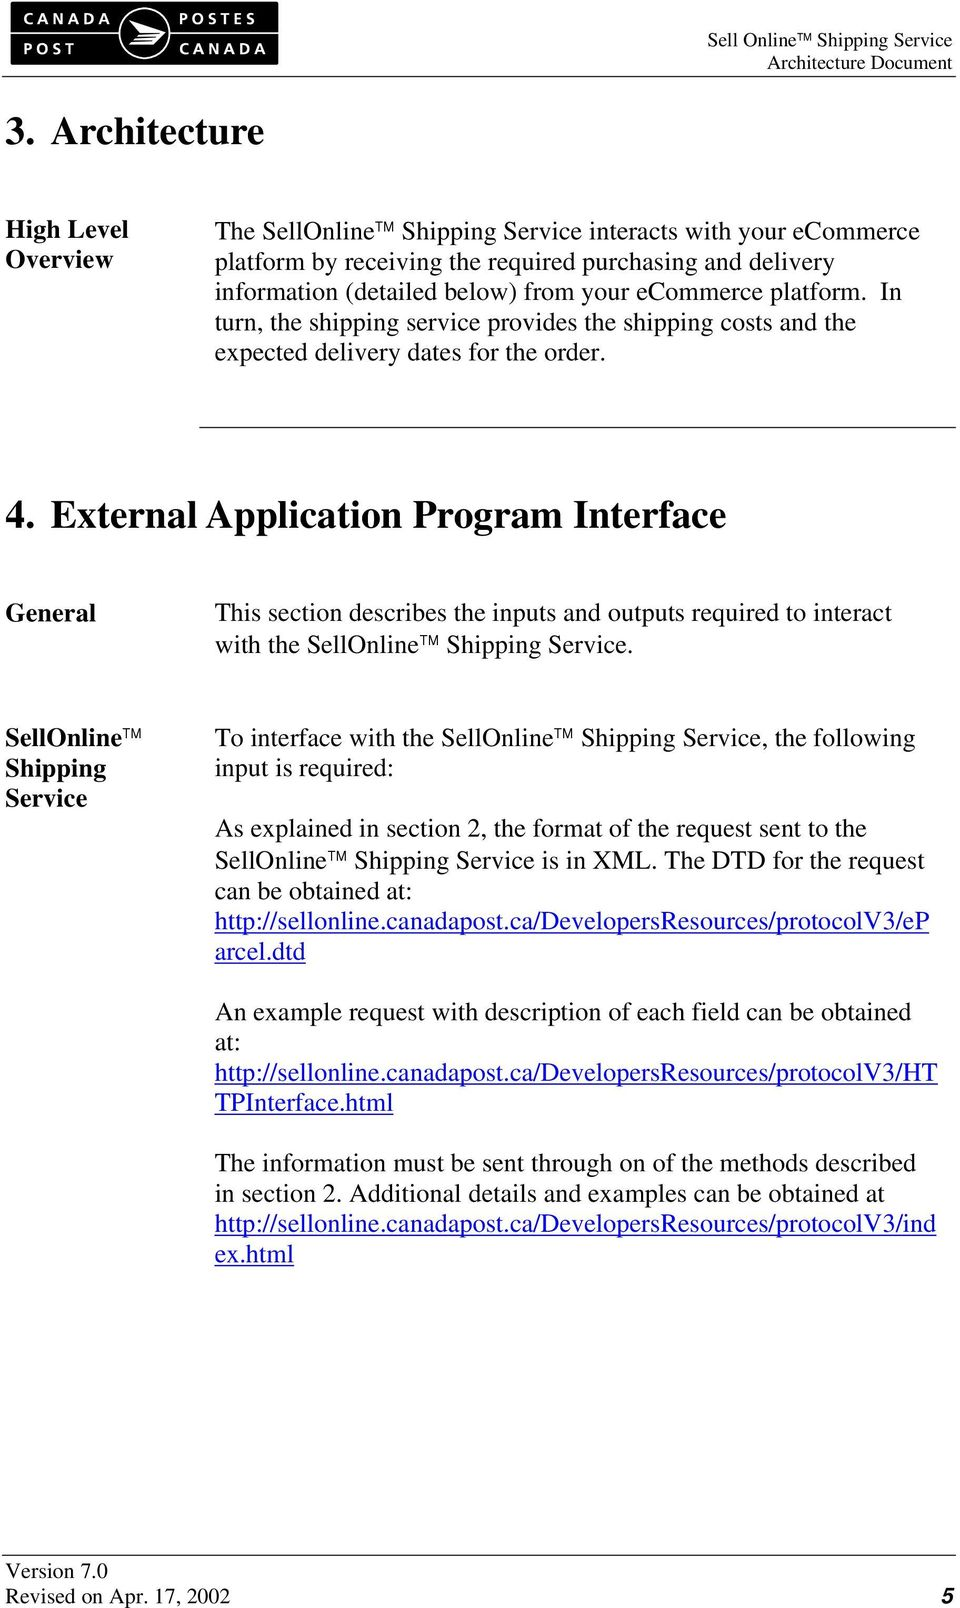 External Application Program Interface General This section describes the inputs and outputs required to interact with the SellOnline Shipping Service.